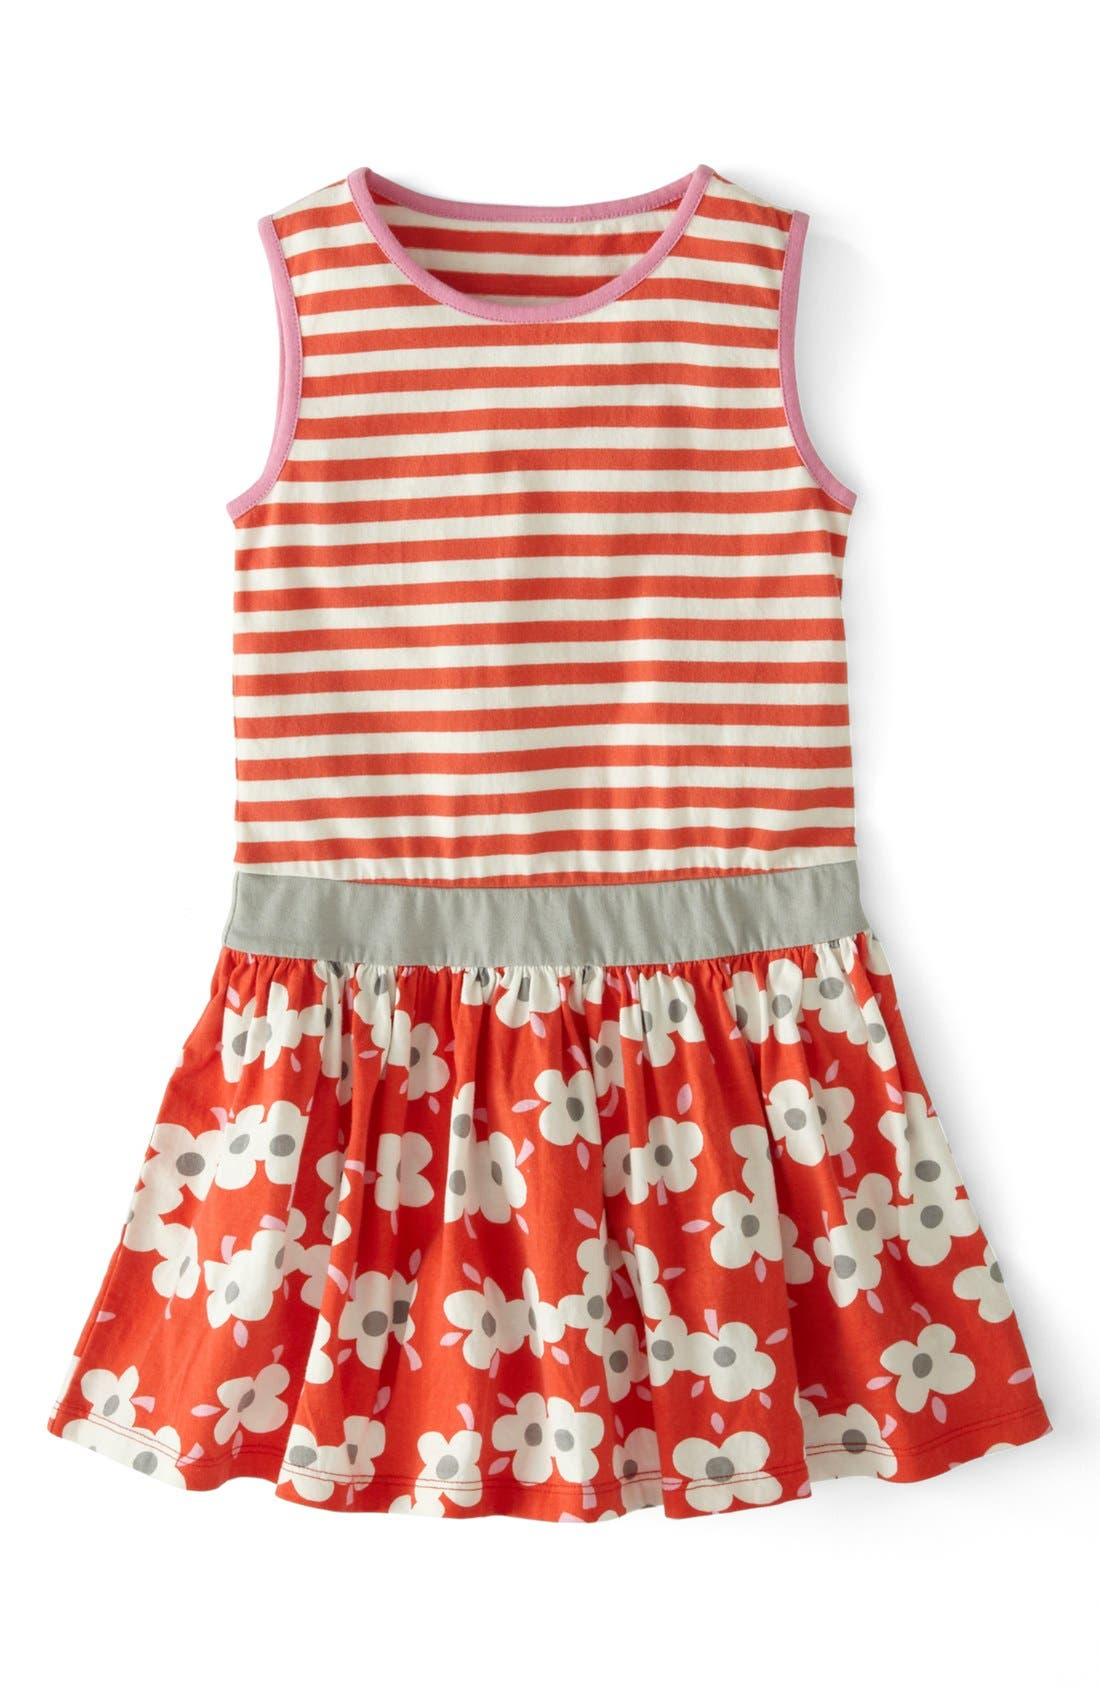 Main Image - Mini Boden 'Jolly' Cotton Jersey Dress (Toddler Girls)